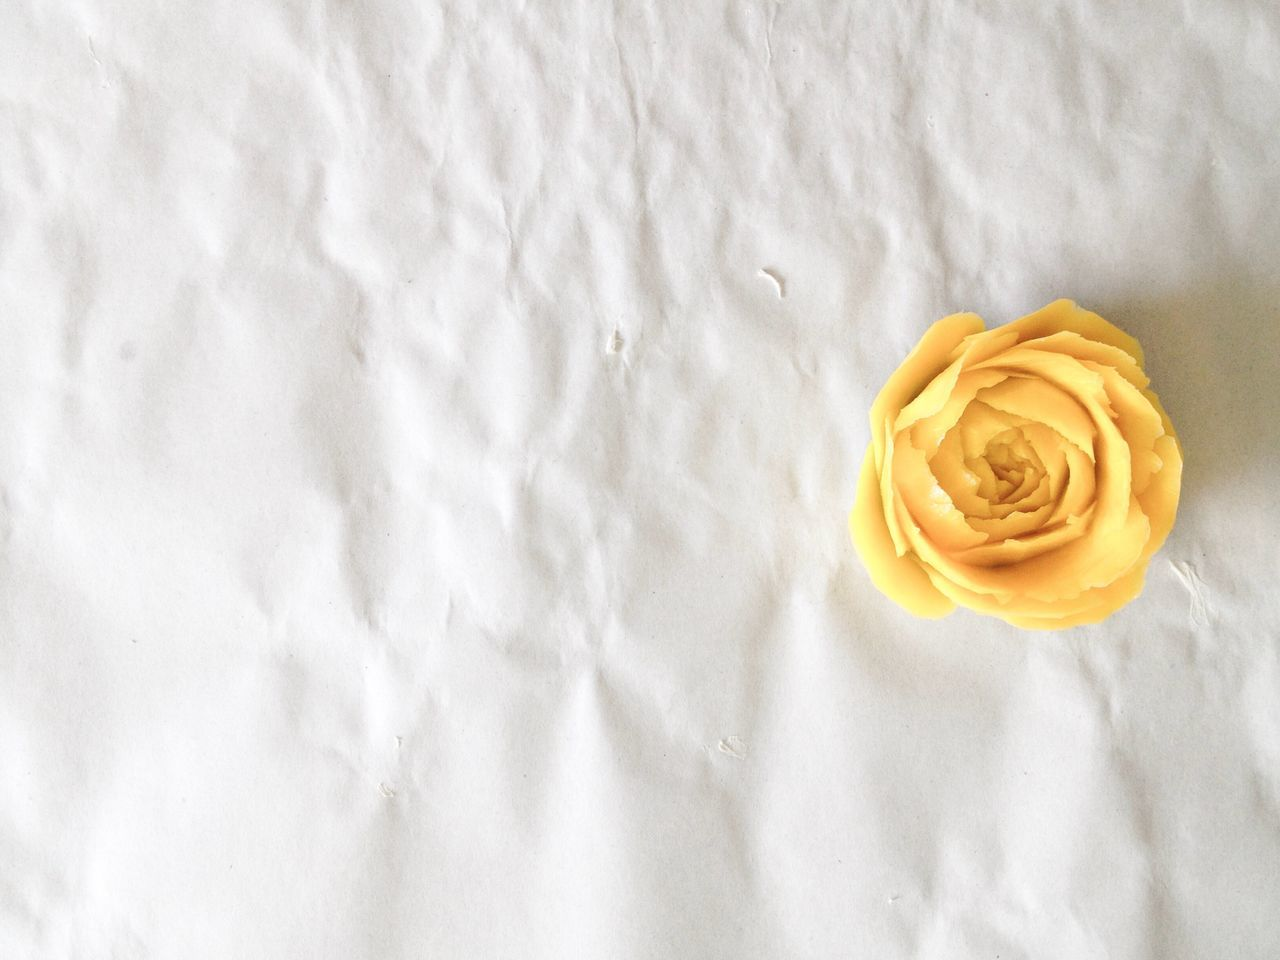 Carved rose from pumpkin Rose - Flower White Color No People Flower Freshness High Angle View Directly Above Carving Pumpkin Paper Yellow Rose Writing Valentine Relationship Indoors  Flower Head Fragility Close-up Nature Ready-to-eat Day